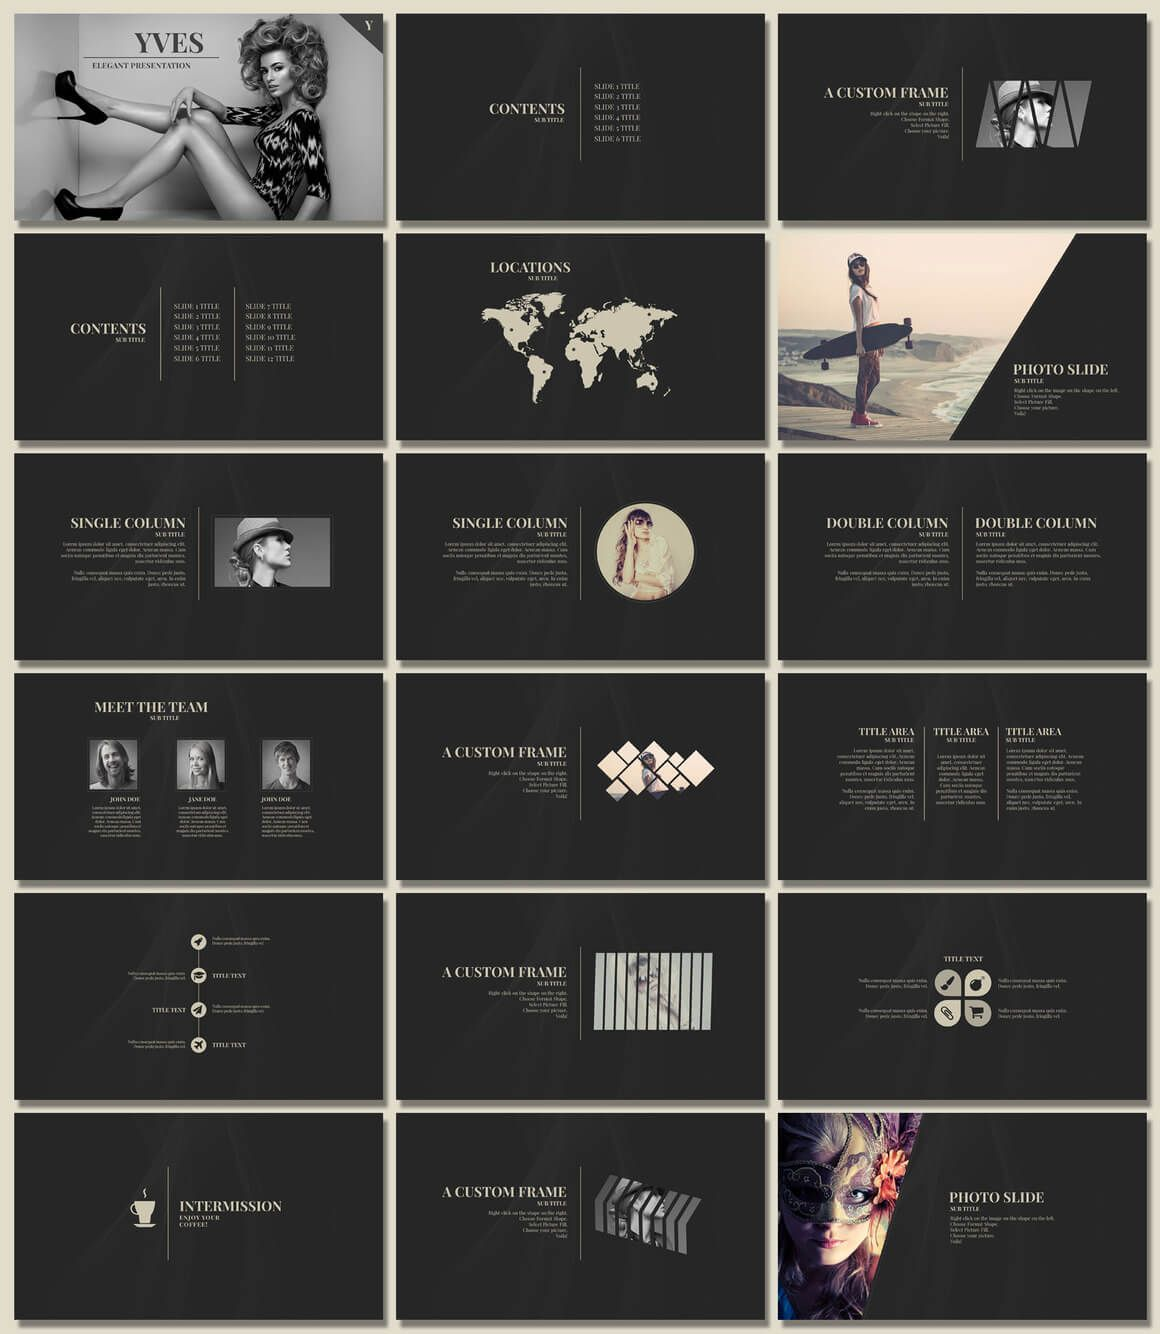 20 outstanding professional powerpoint templates for your next